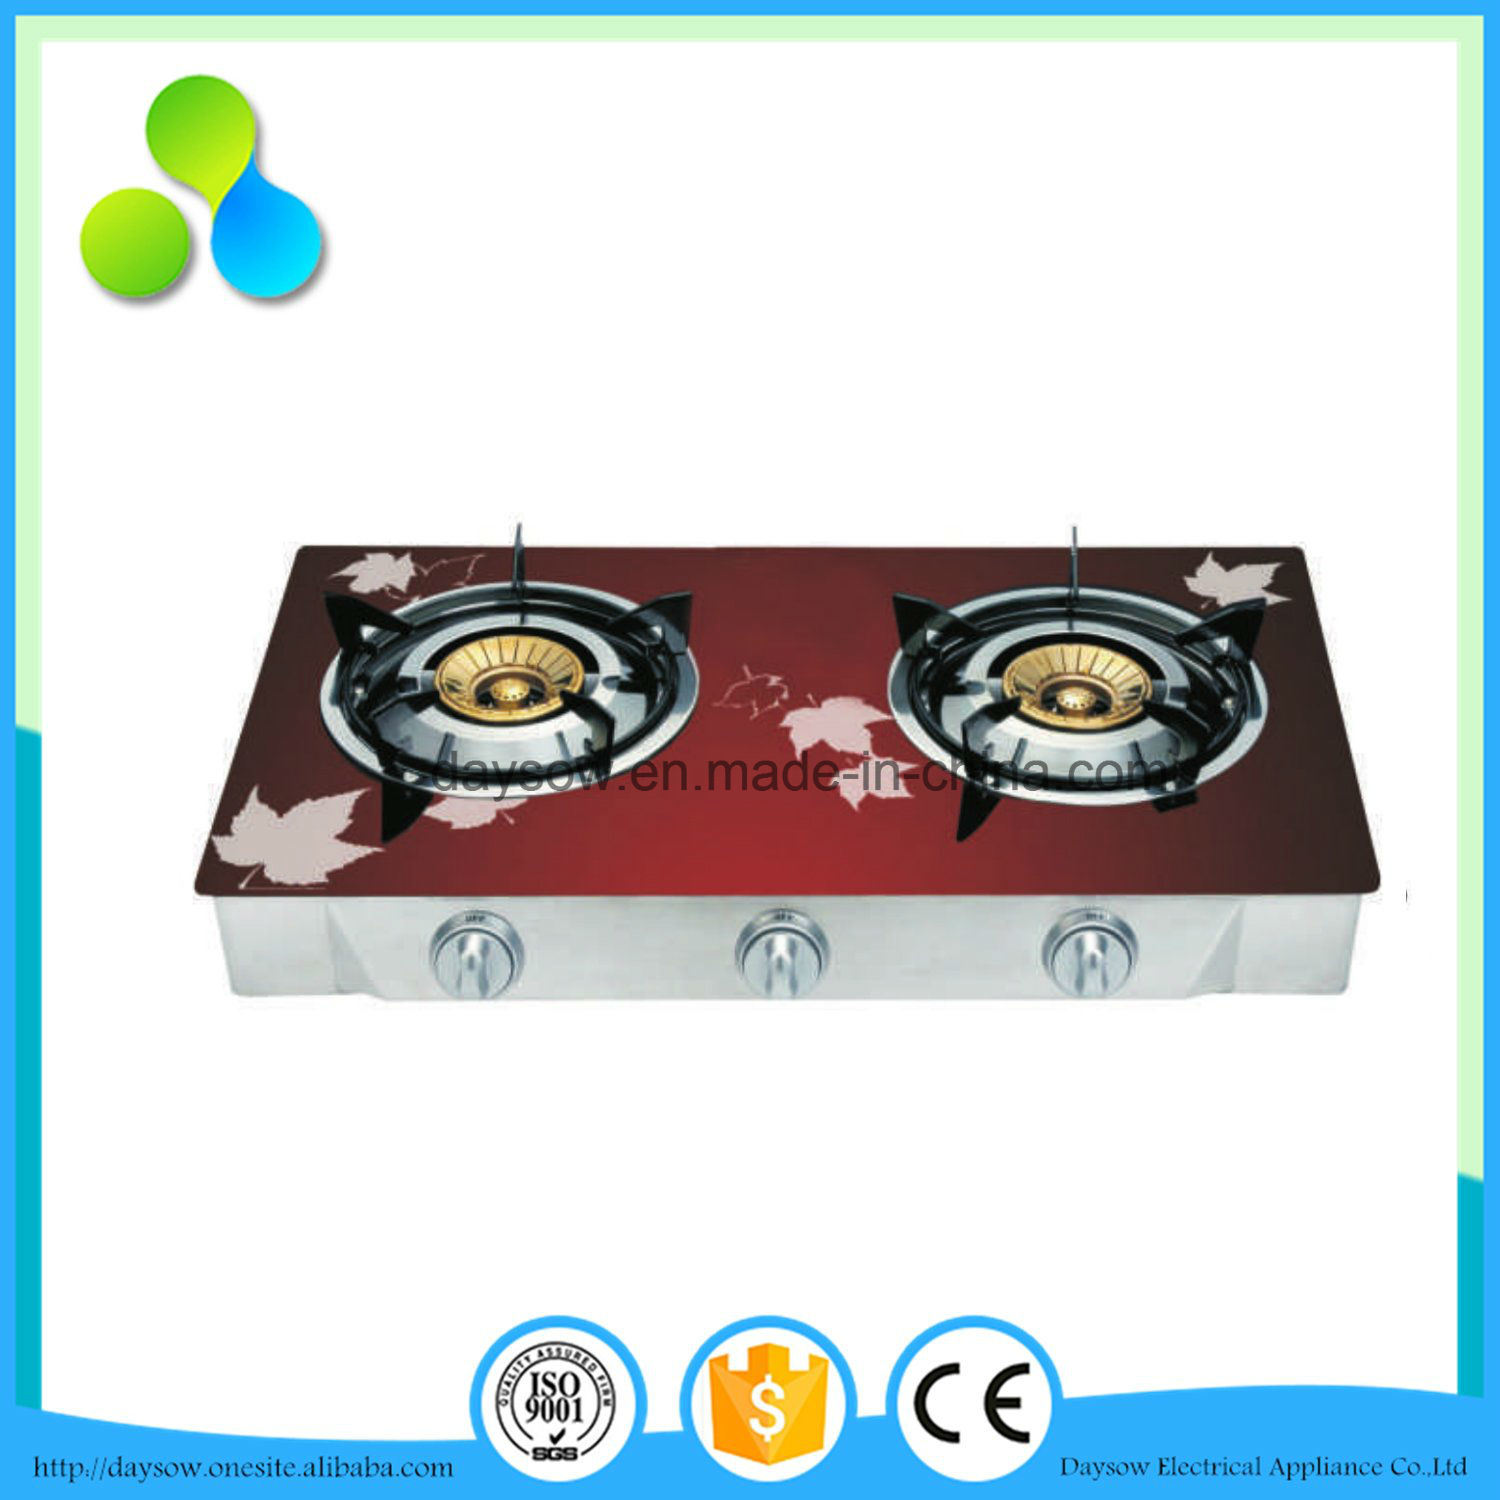 Low Price Camper Sink and Gas Stove